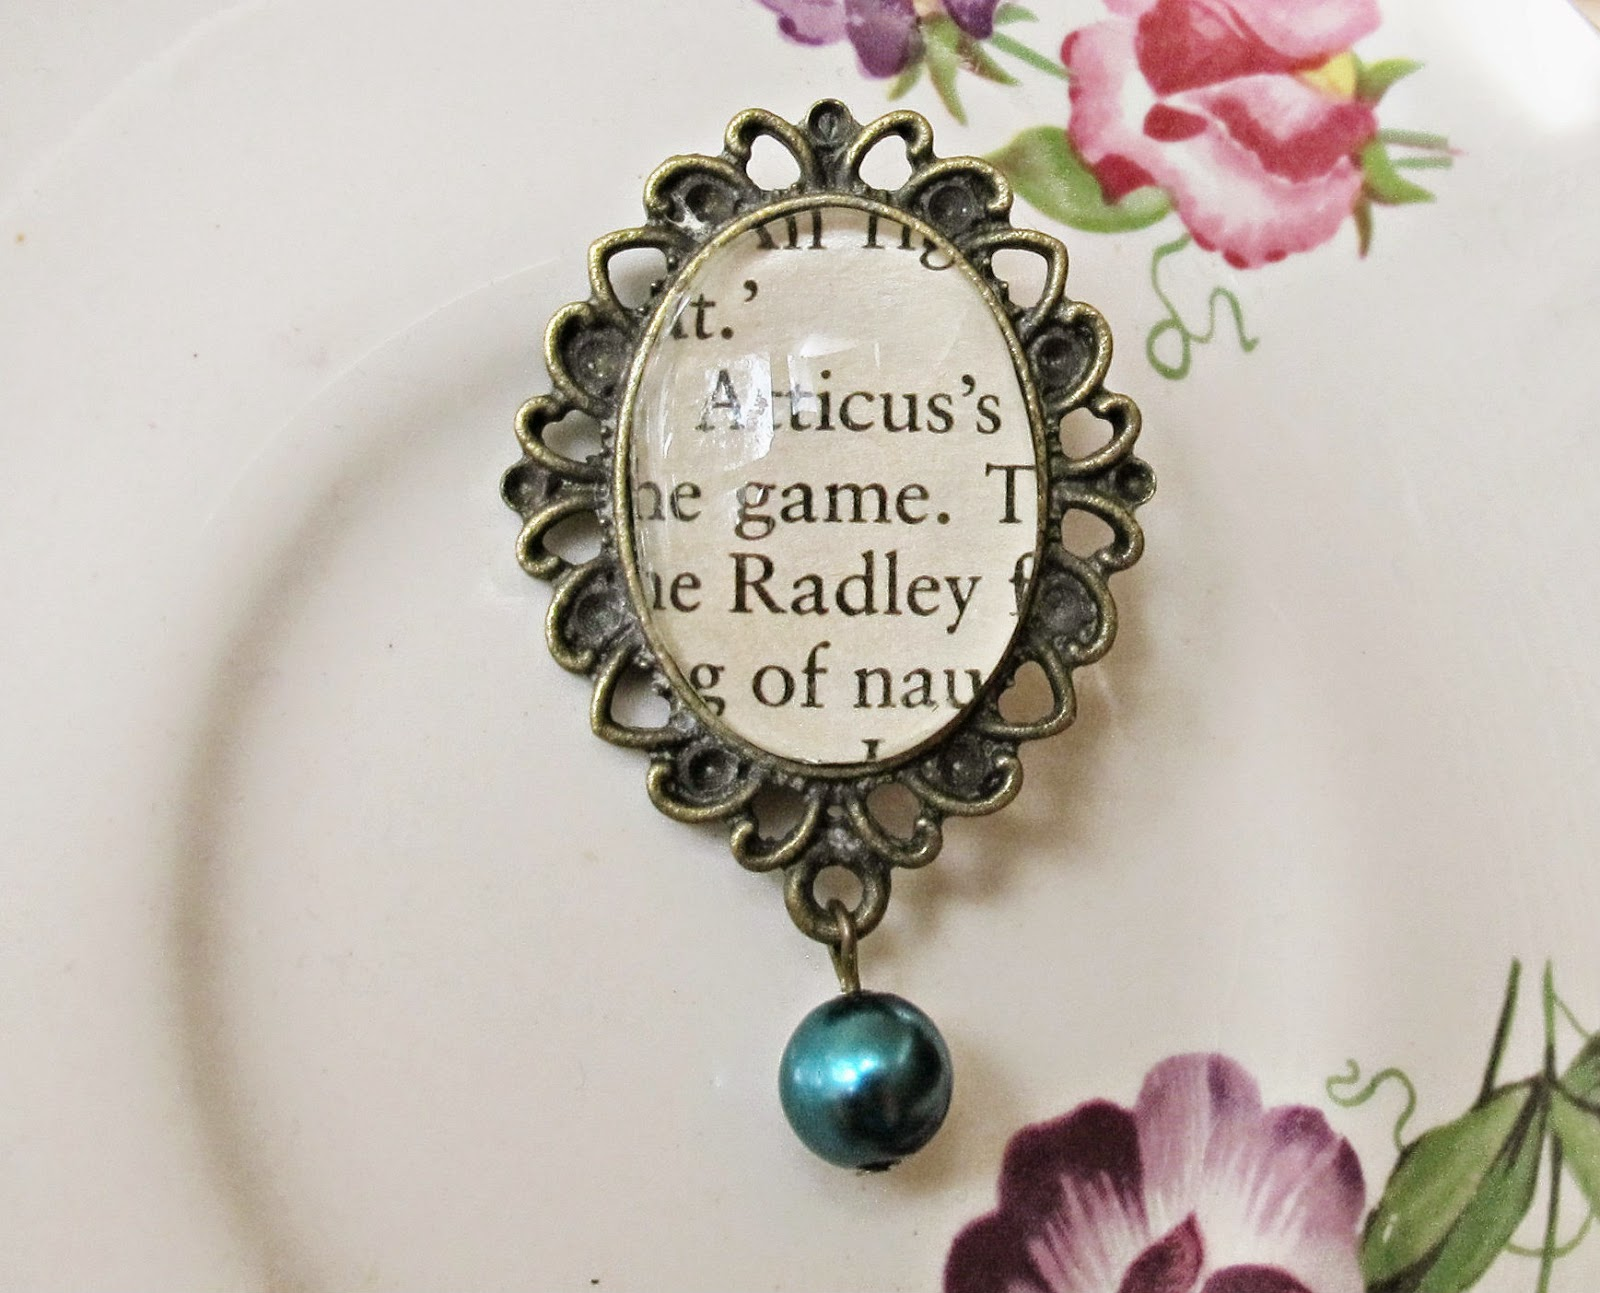 image atticus finch boo radley brooch pin bouquet to kill a mockingbird two cheeky monkeys dark turquoise blue pearl